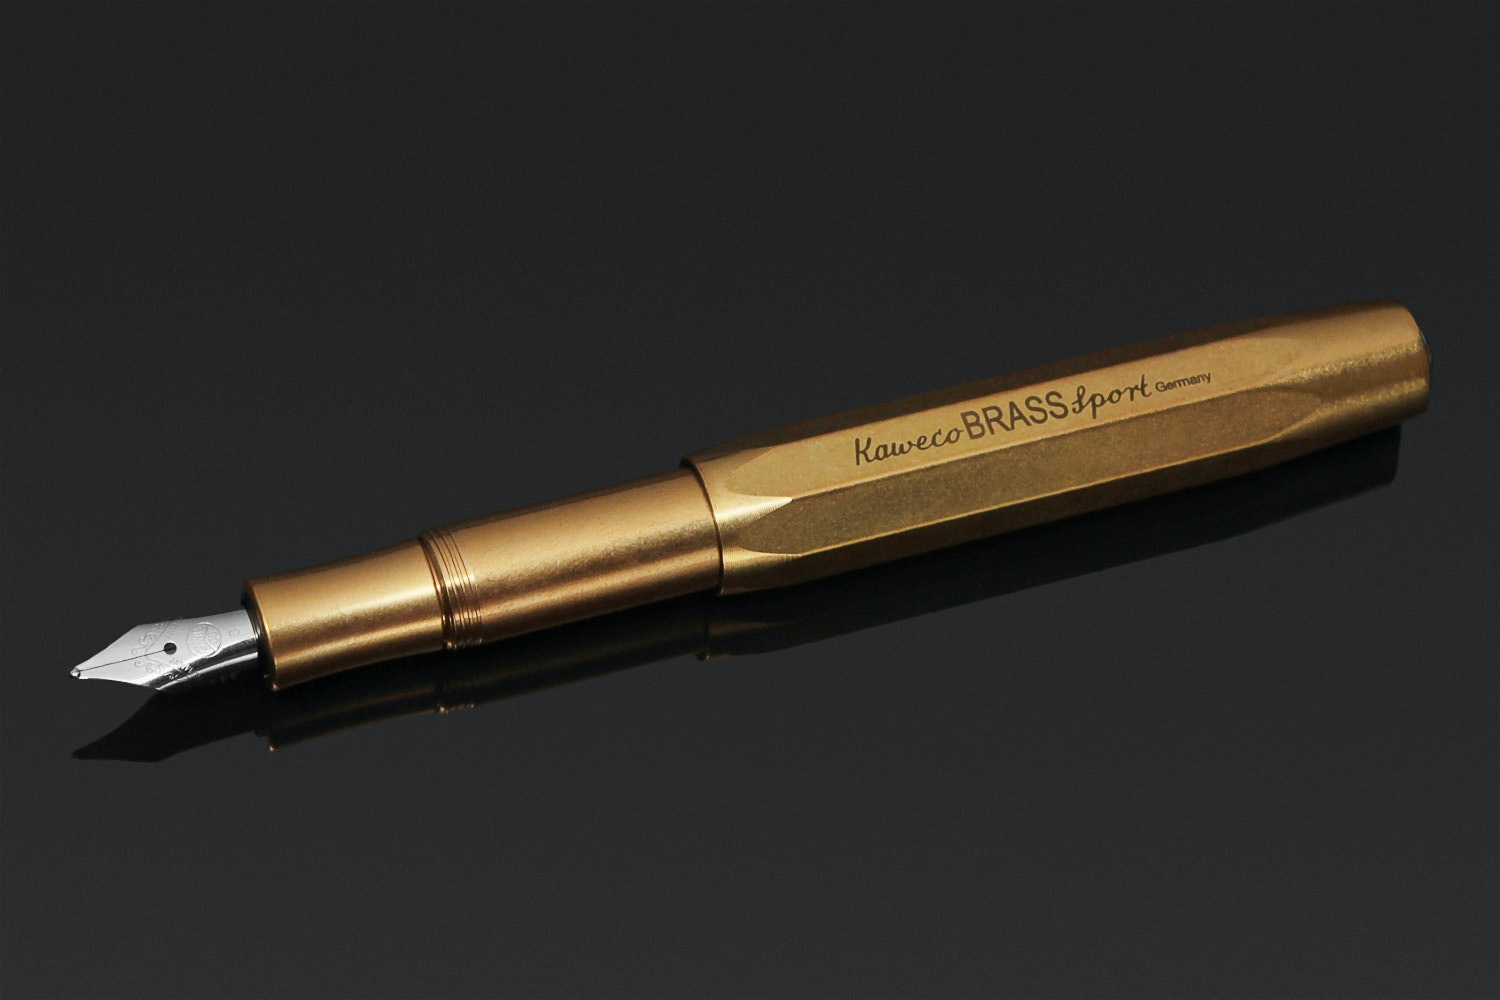 Kaweco Brass Sport Fountain Pen